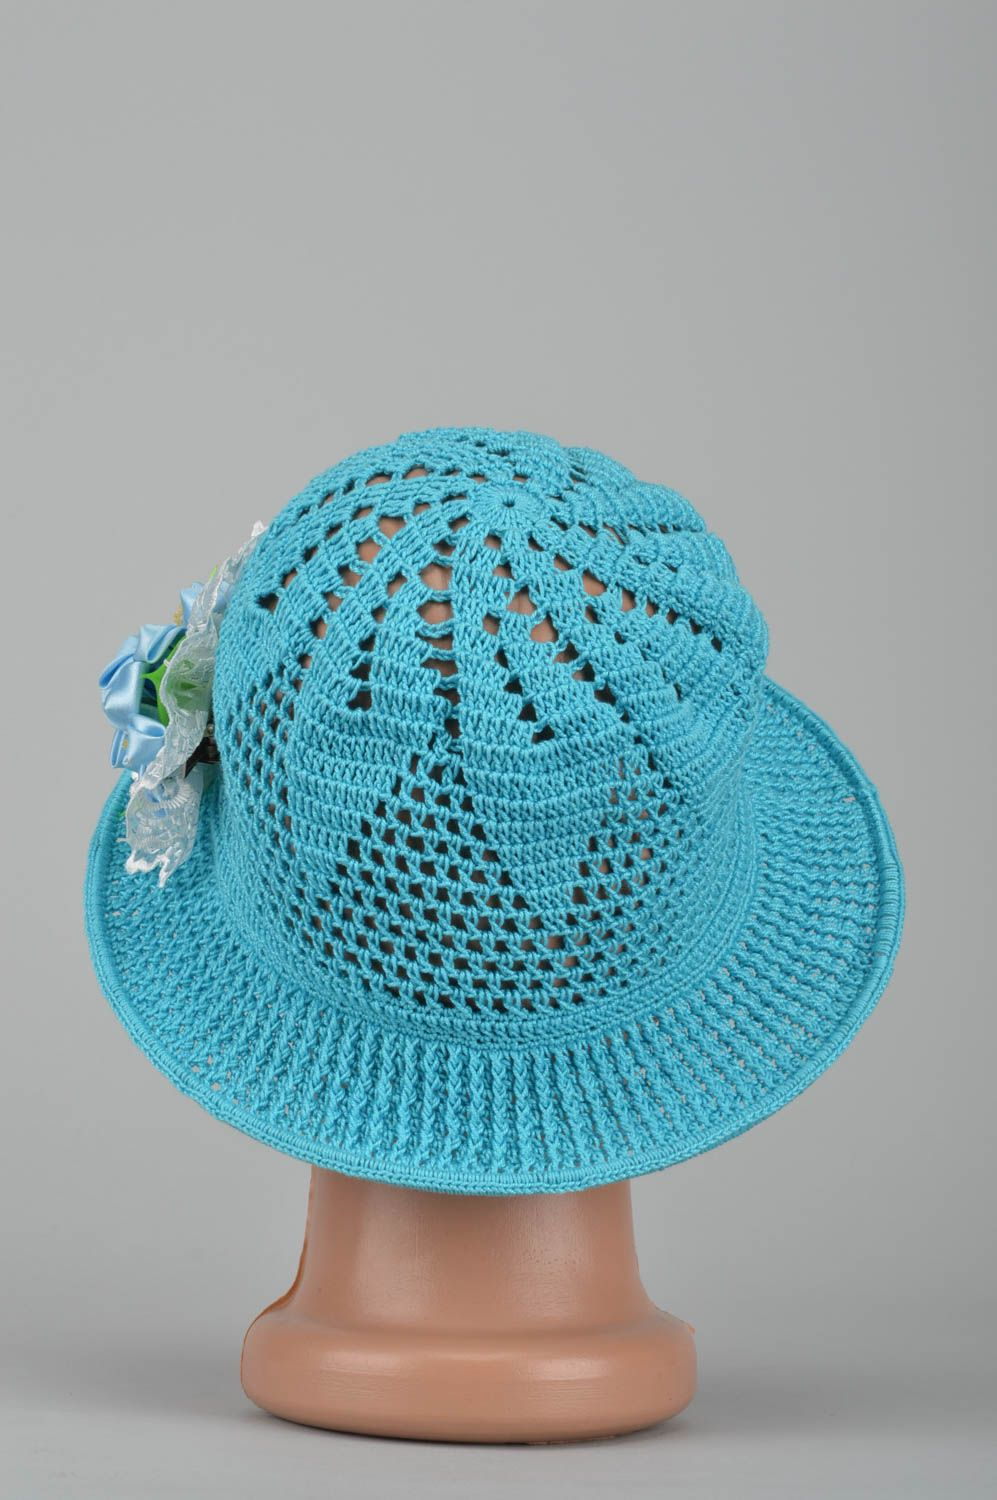 8c20f21bfbb Handmade summer hat crochet hats for babies gift ideas for girls funny hats  - MADEheart.